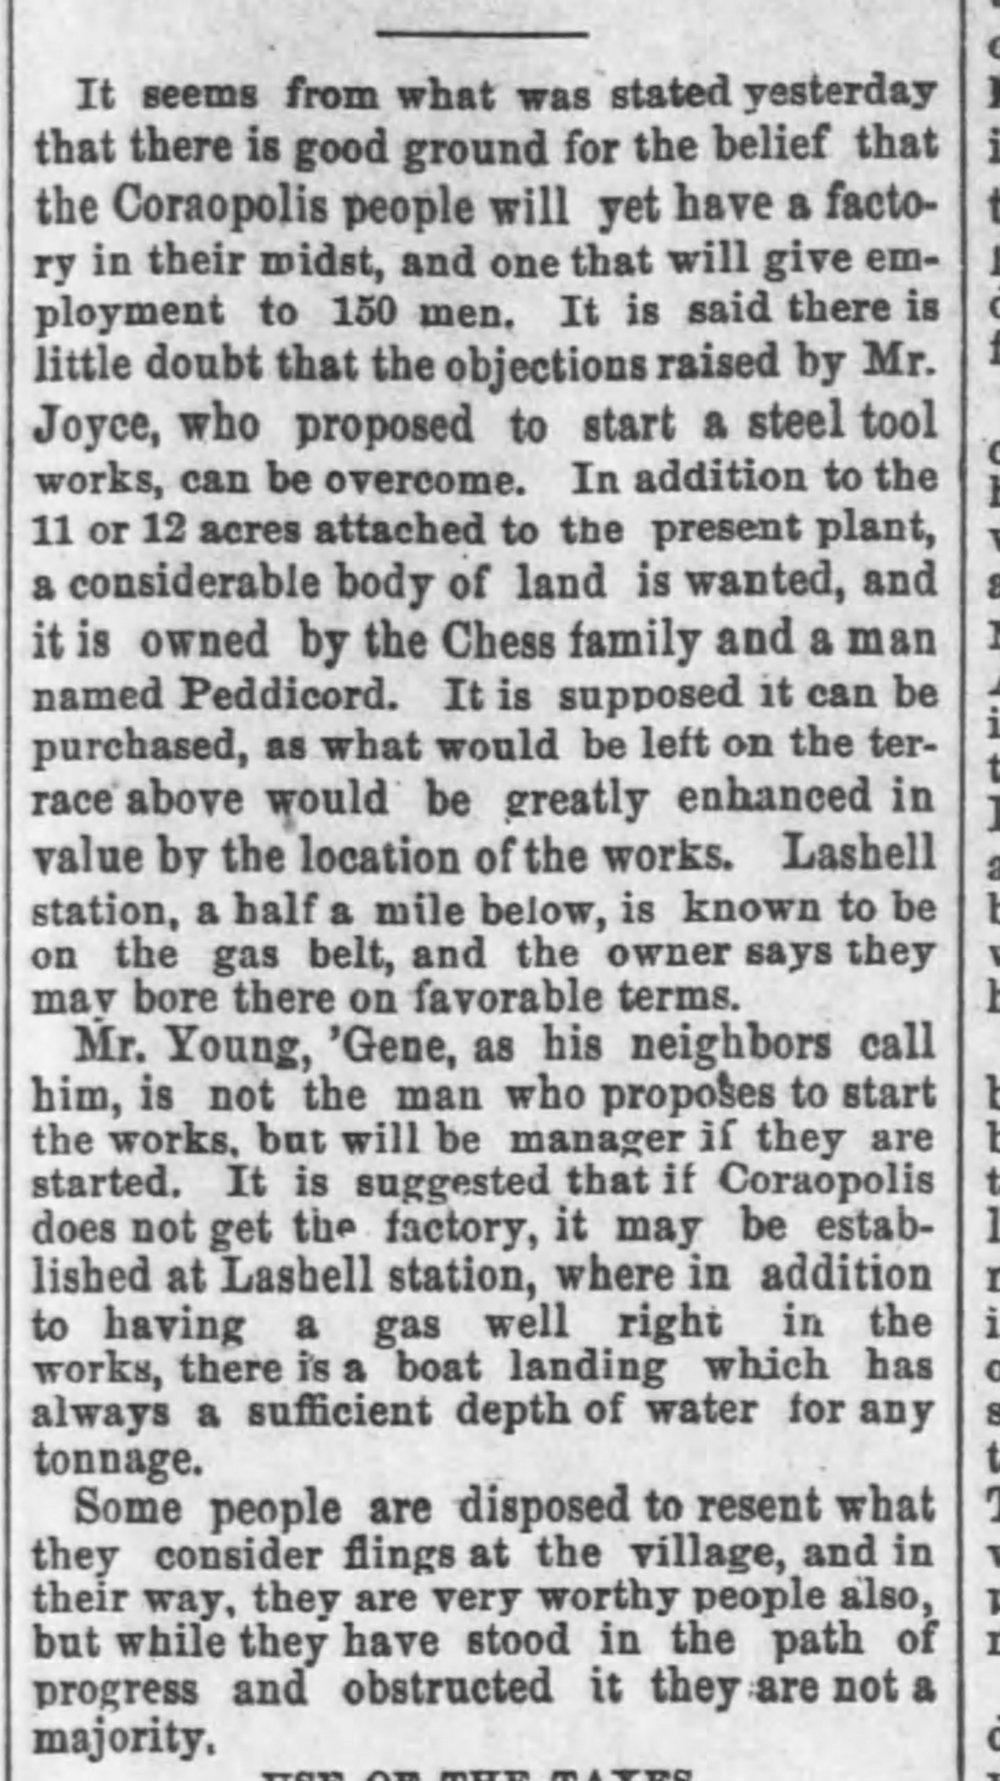 Pittsburgh Dispatch, December 9, 1889